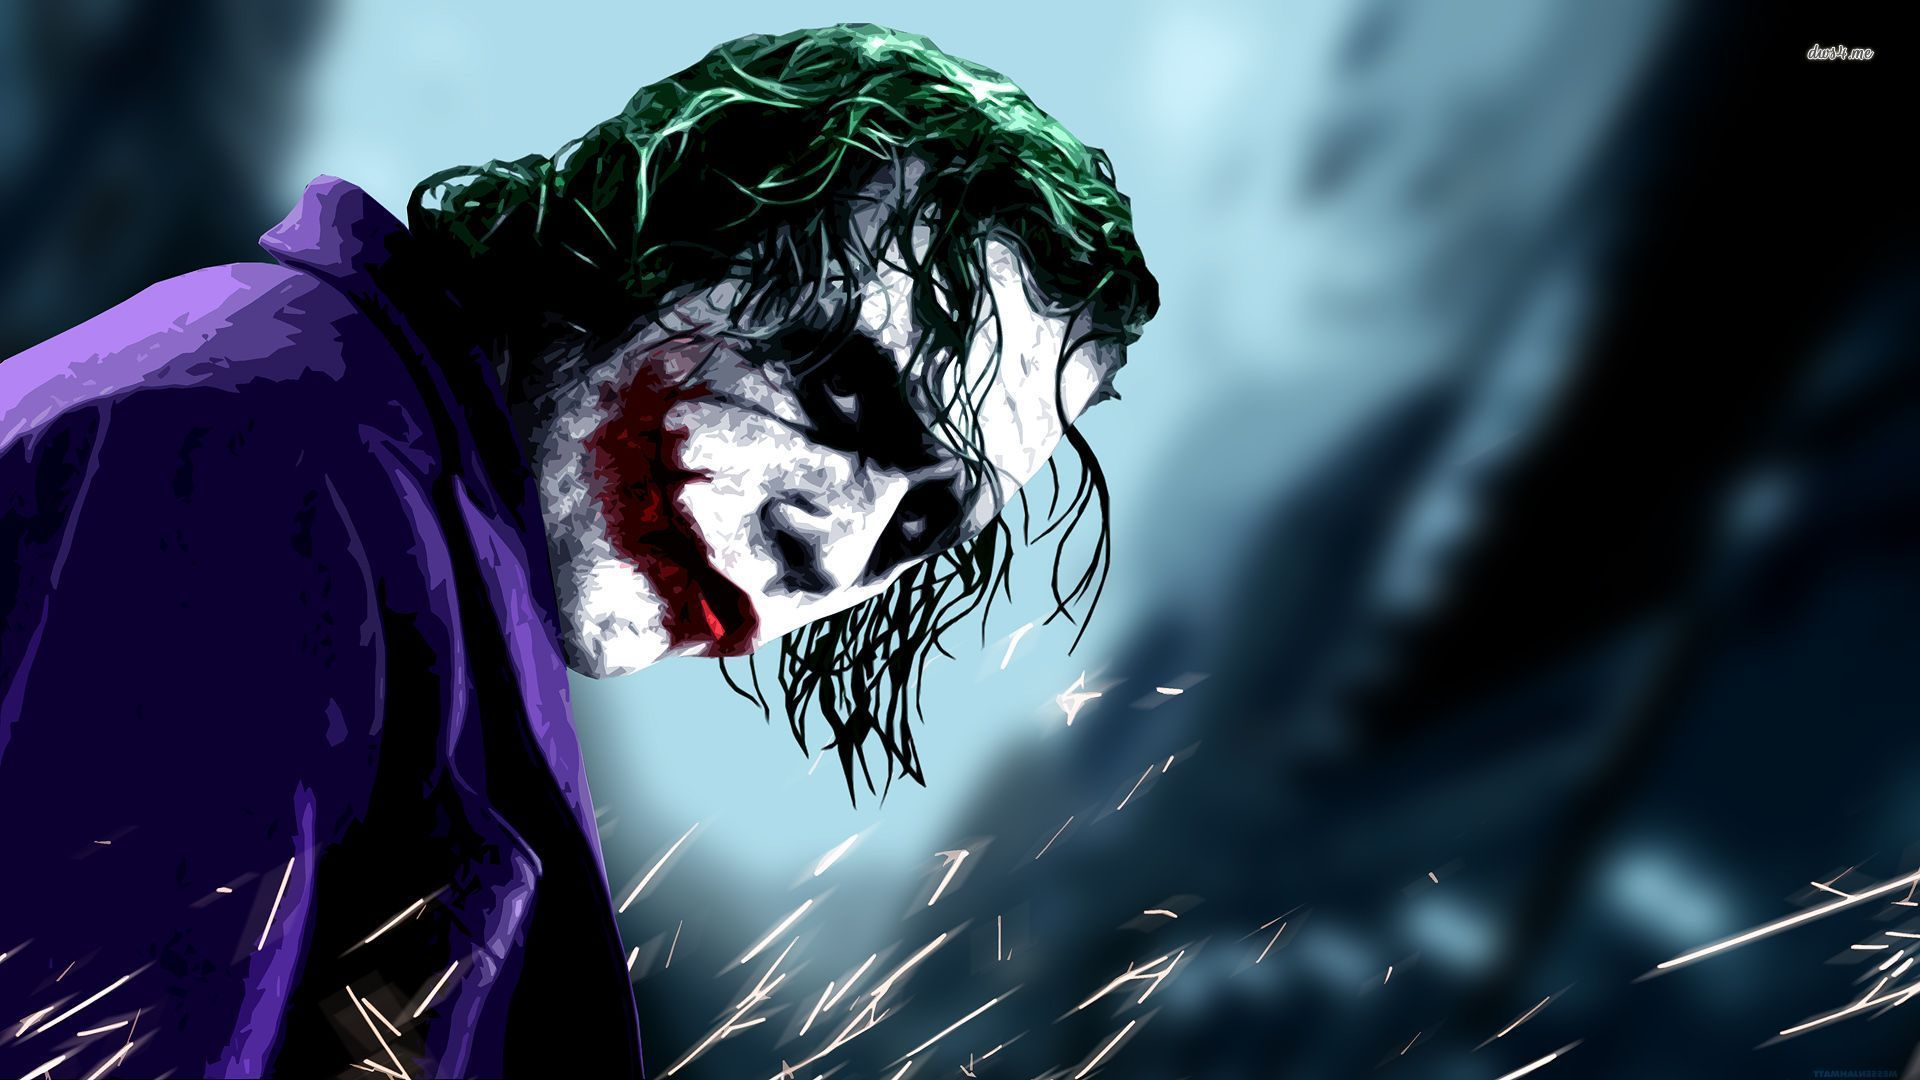 Joker Hd Wallpapers: Joker HD Wallpapers 1080p